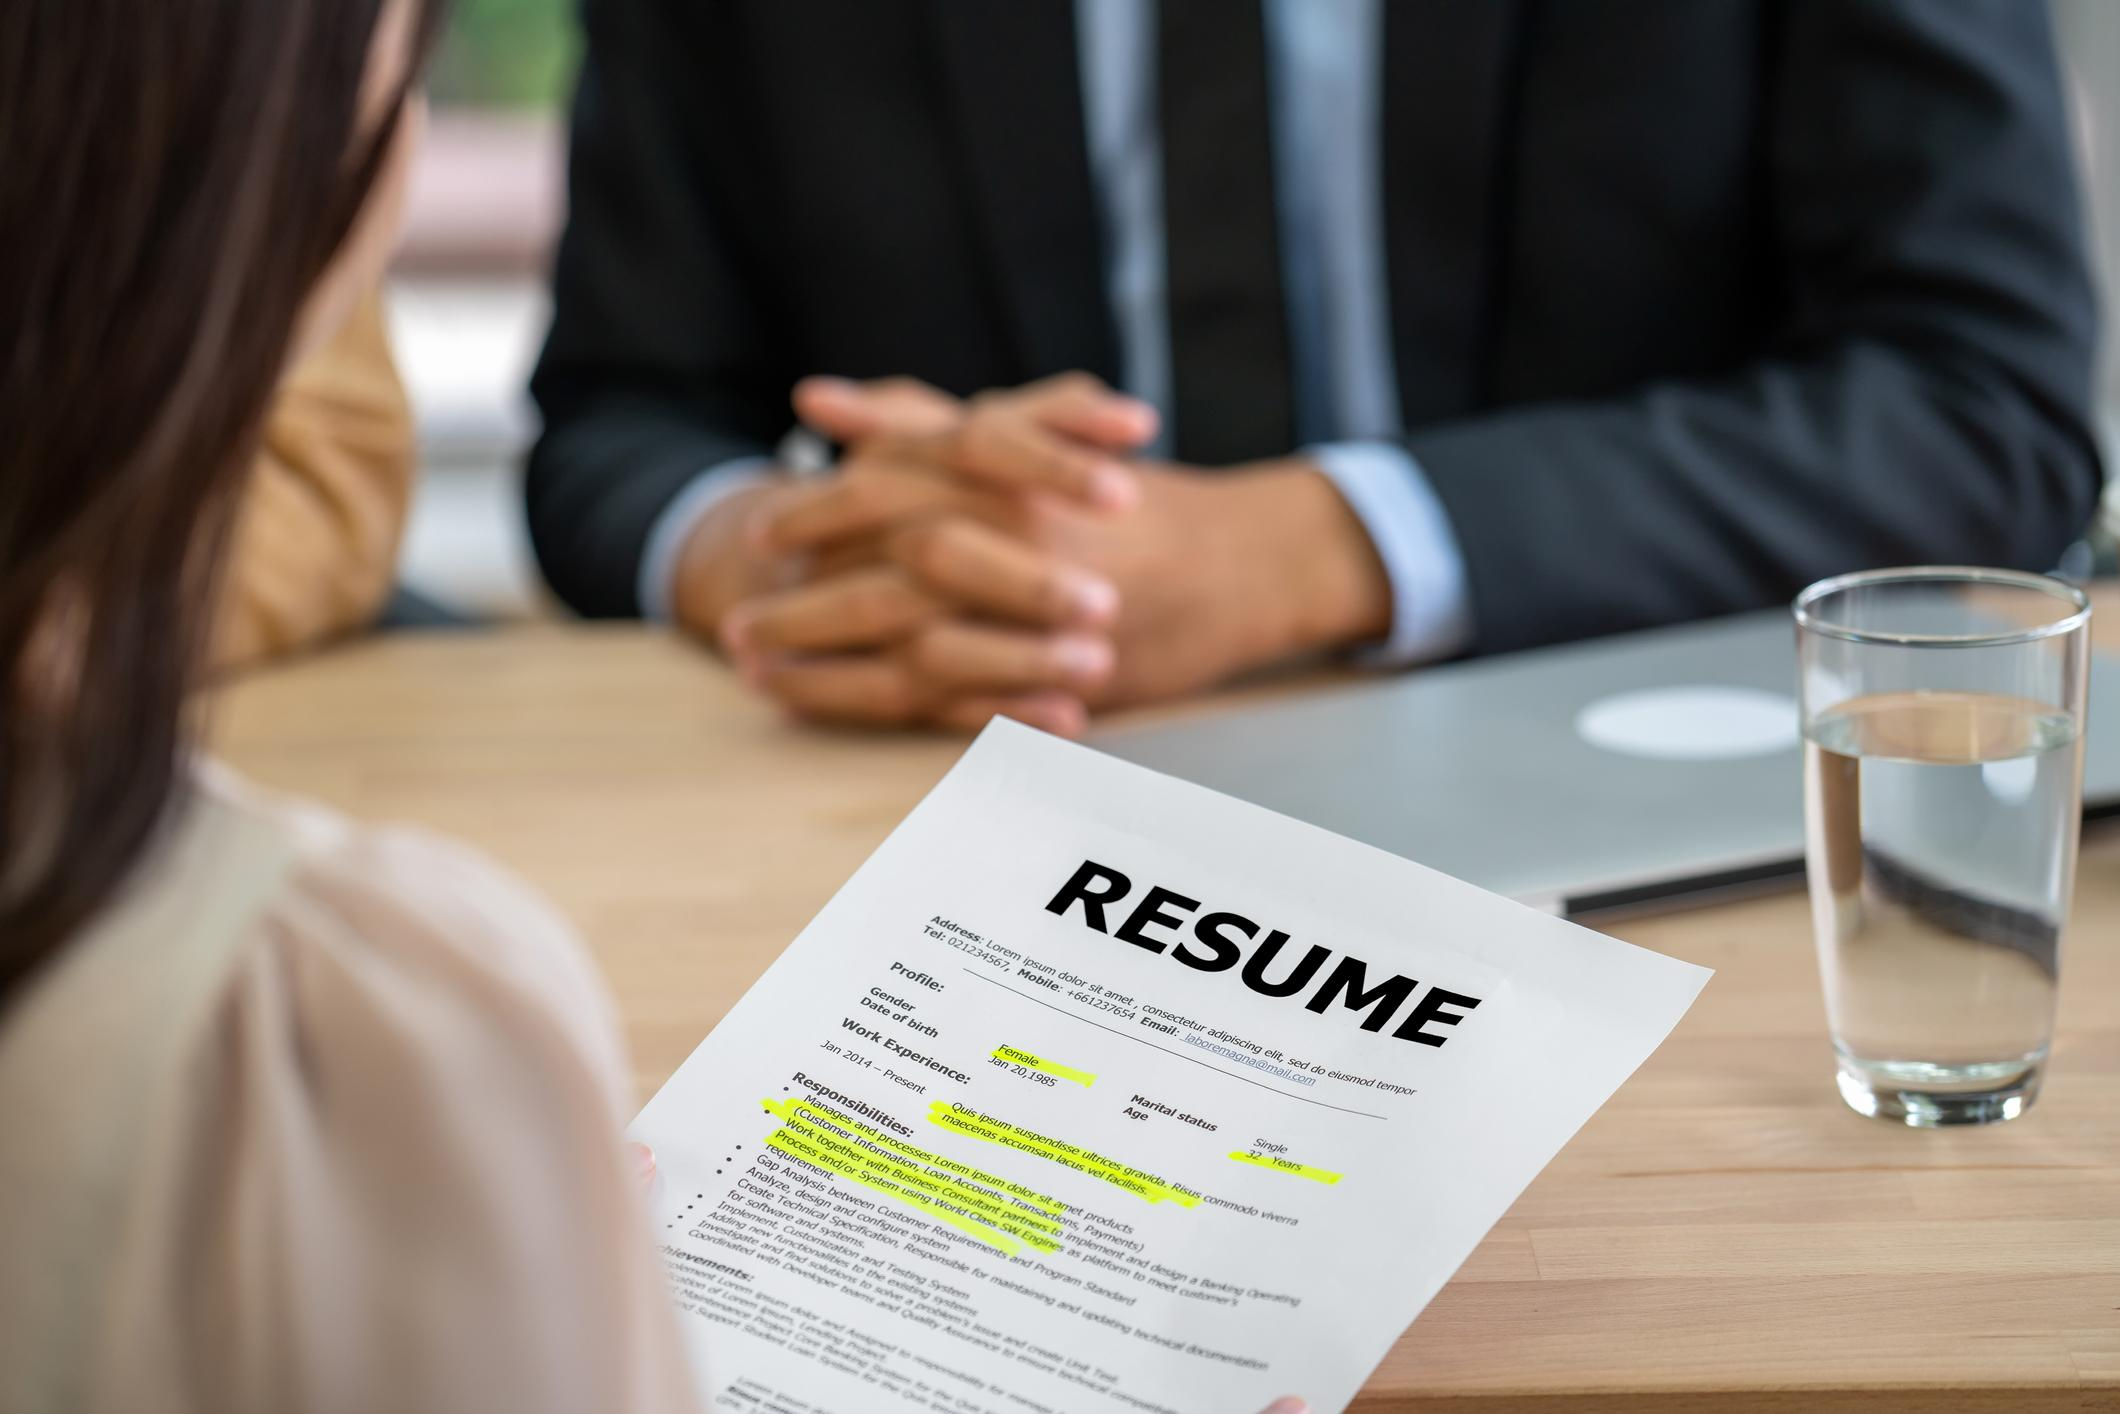 This resumé promises to land you a six-figure job